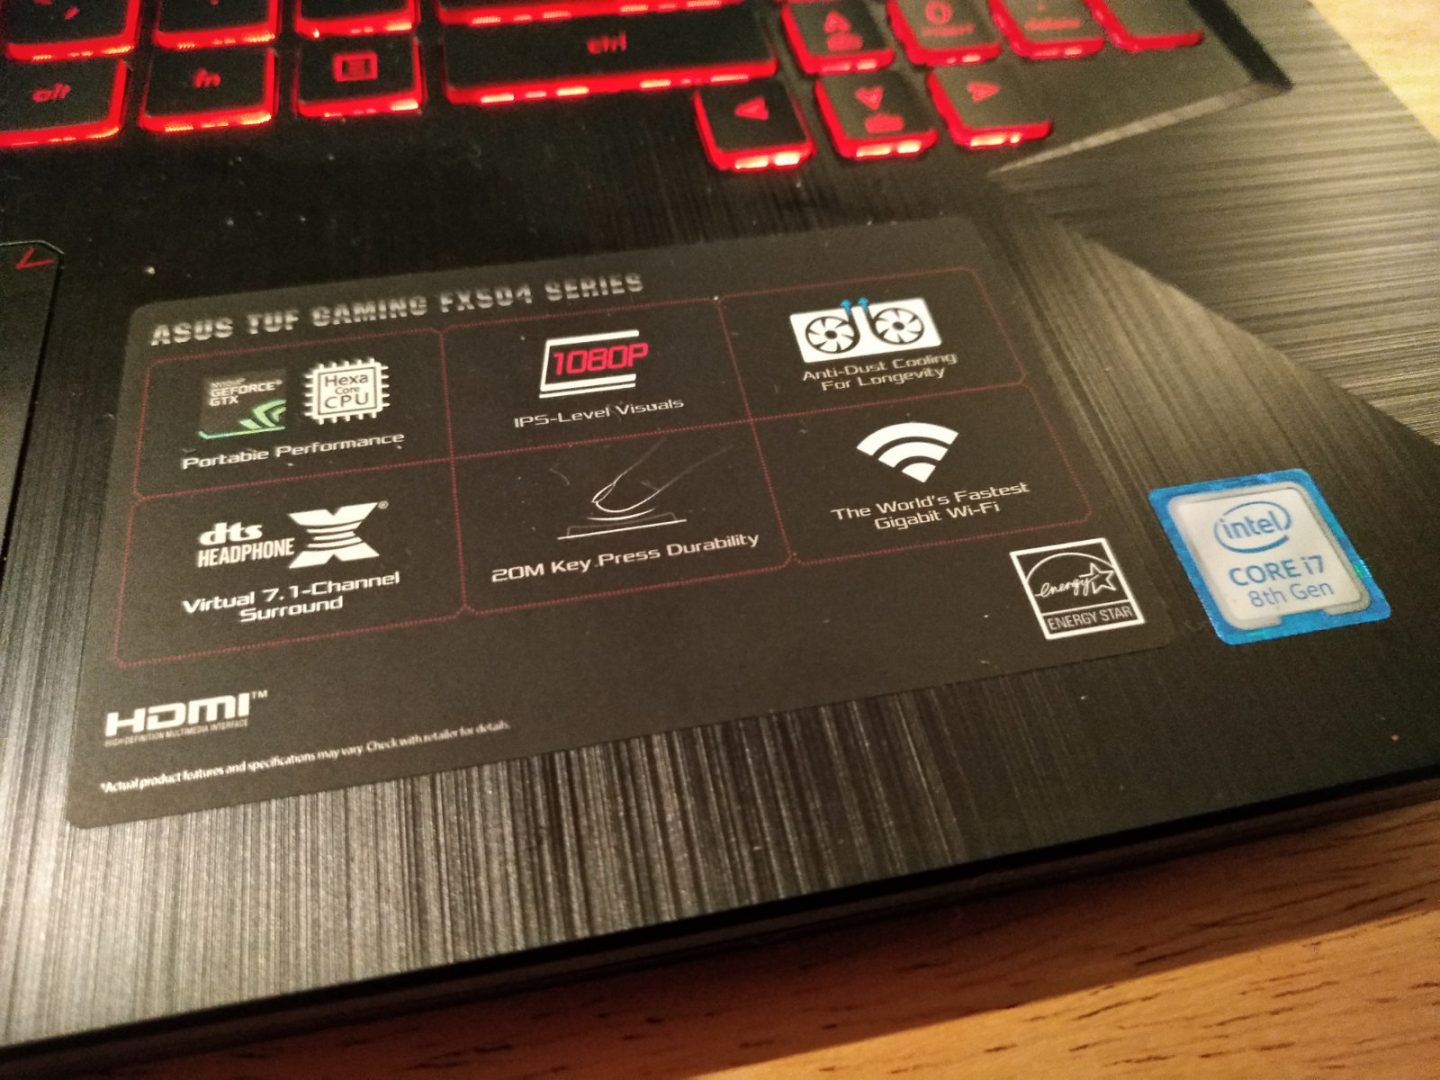 The Asus FX504 is far better than reviewers think